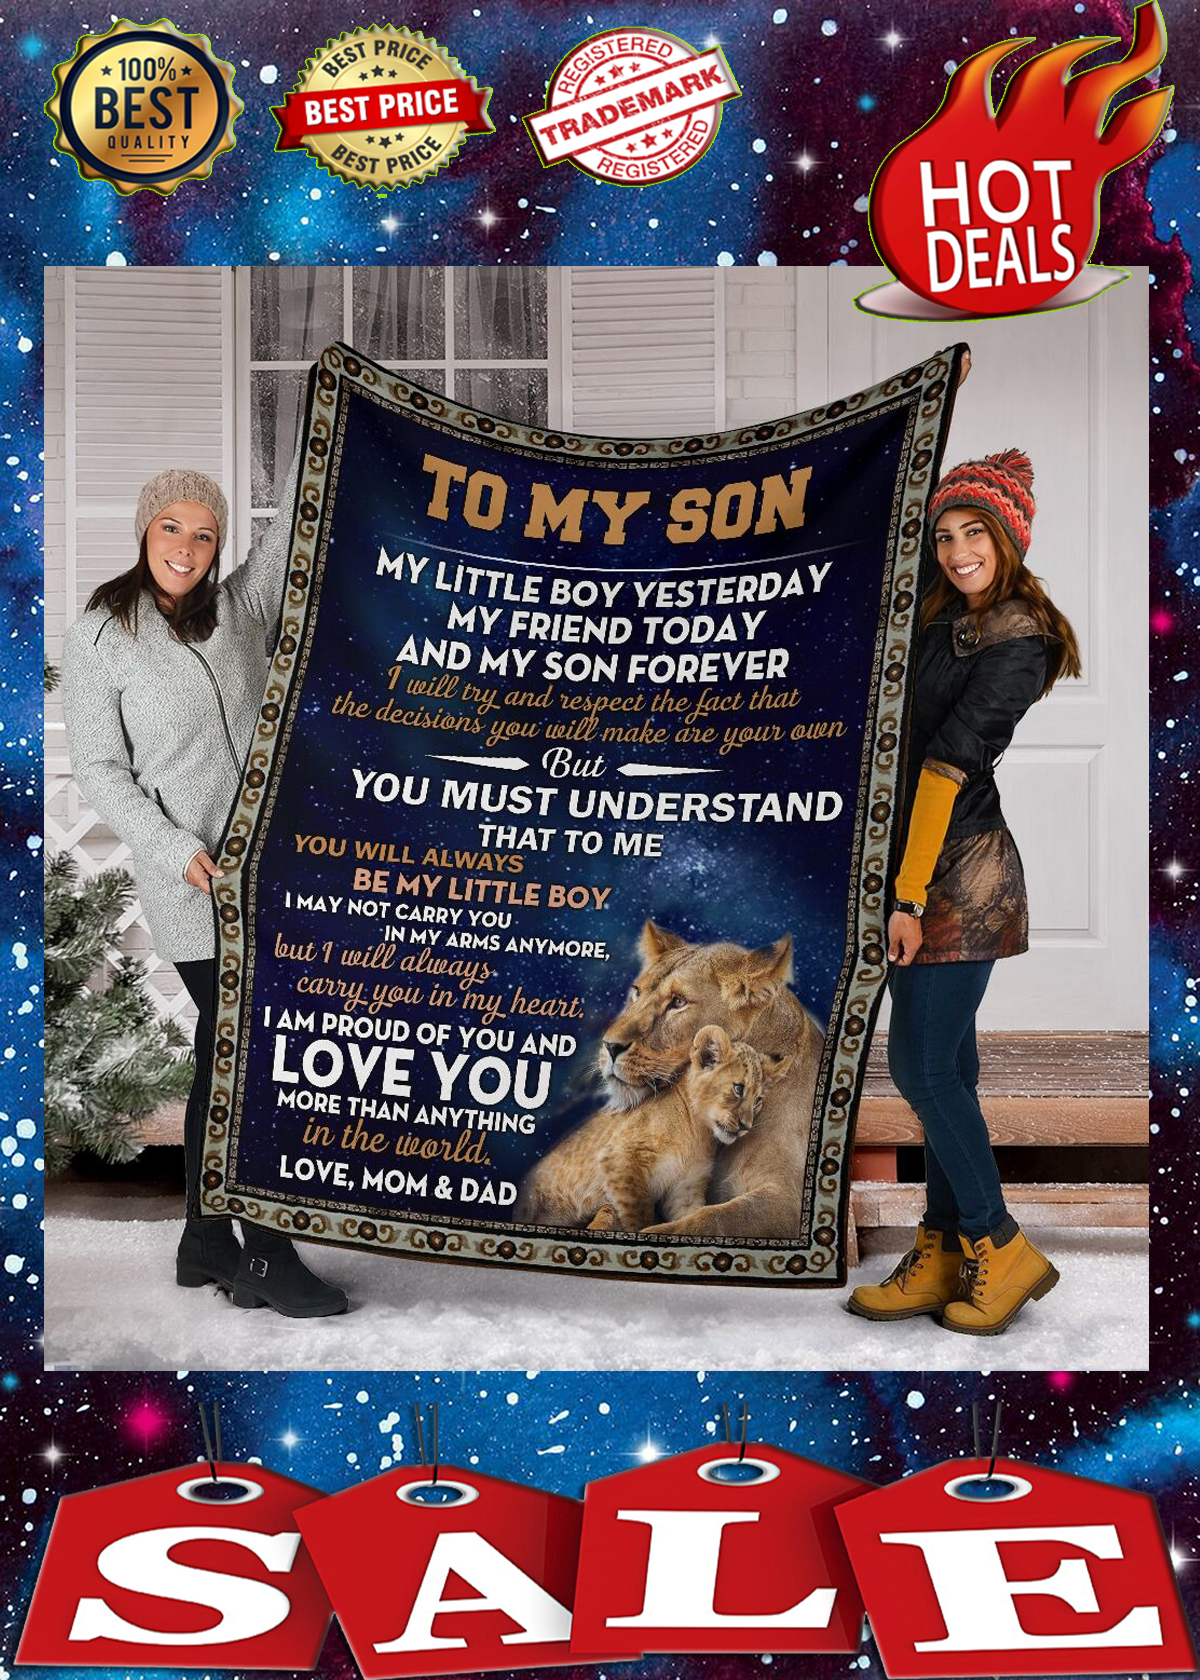 Lion to my son my little boy yesterday blanket 3